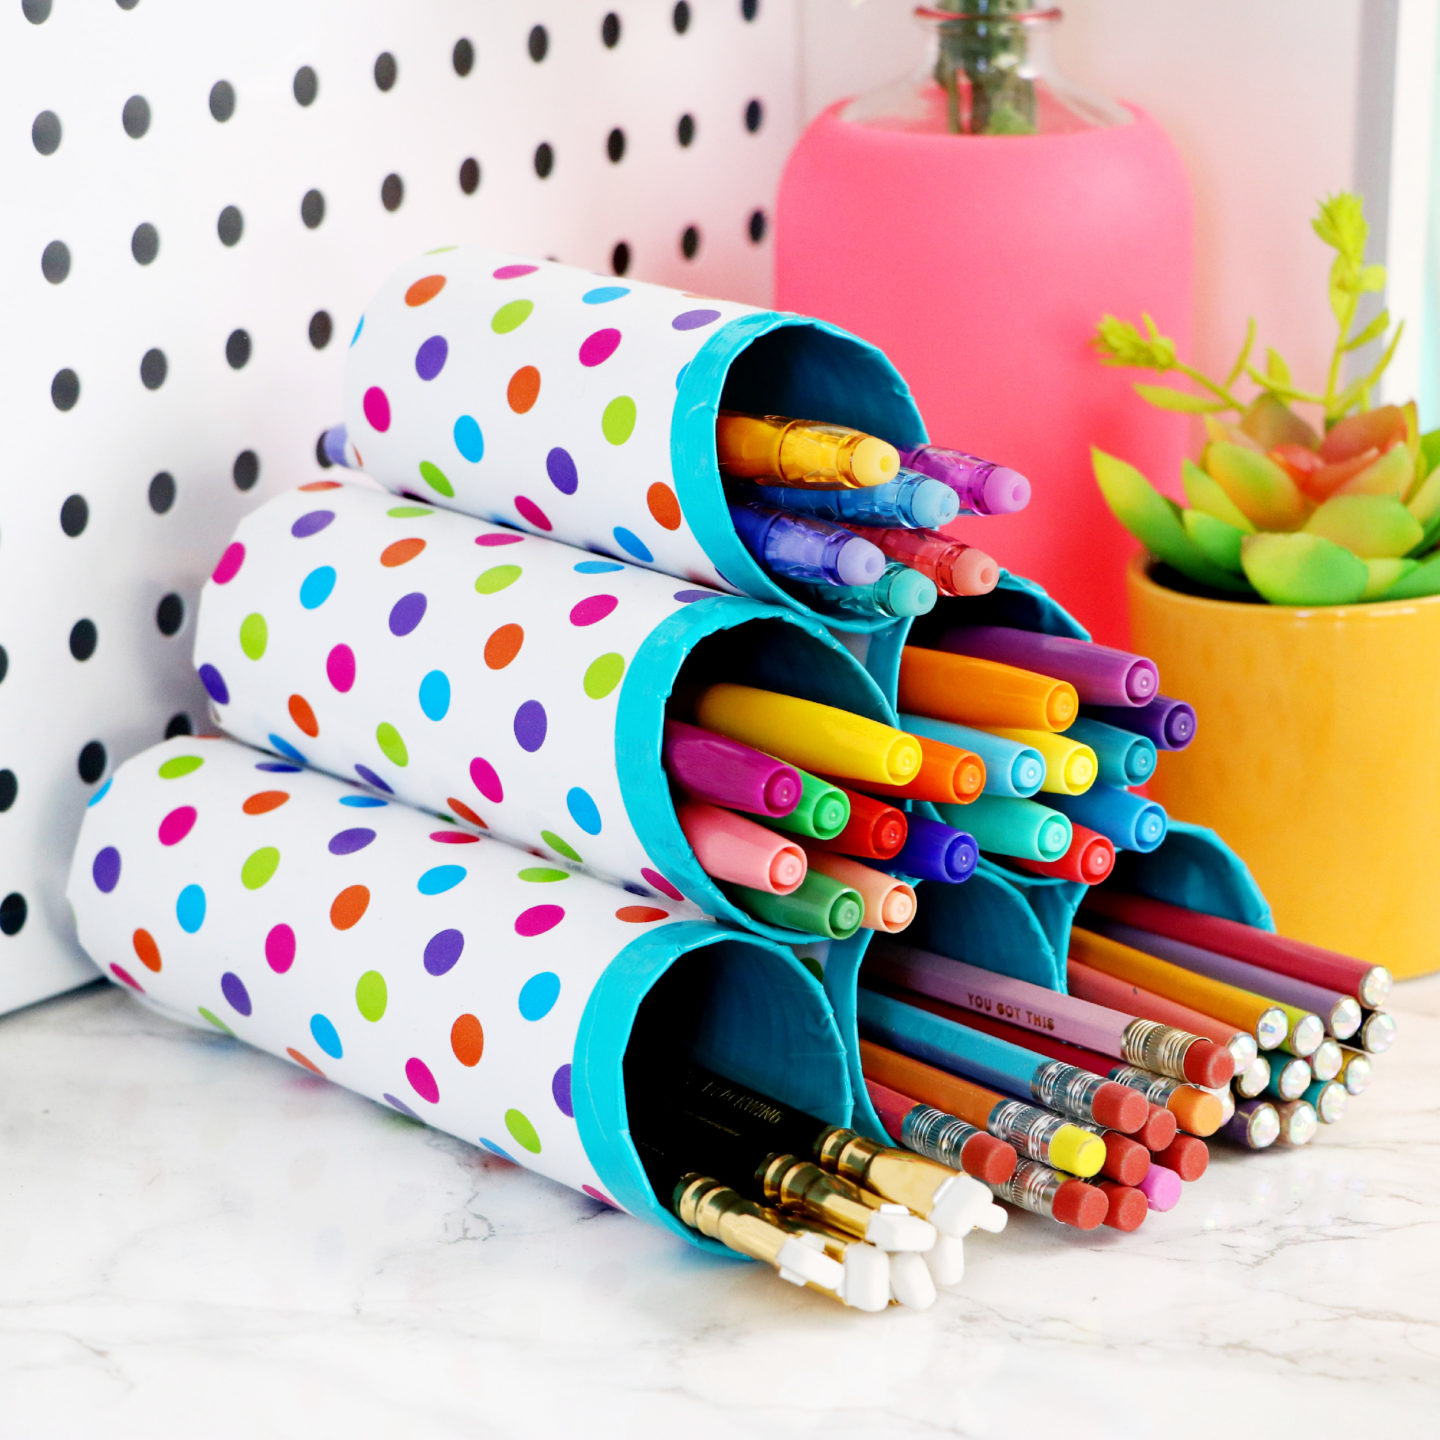 diy desk crafts cardboard tubes projects craft tube holder storage organization sewing tutorials manualidades schreibtisch organisation handmade mason basteln ambachts